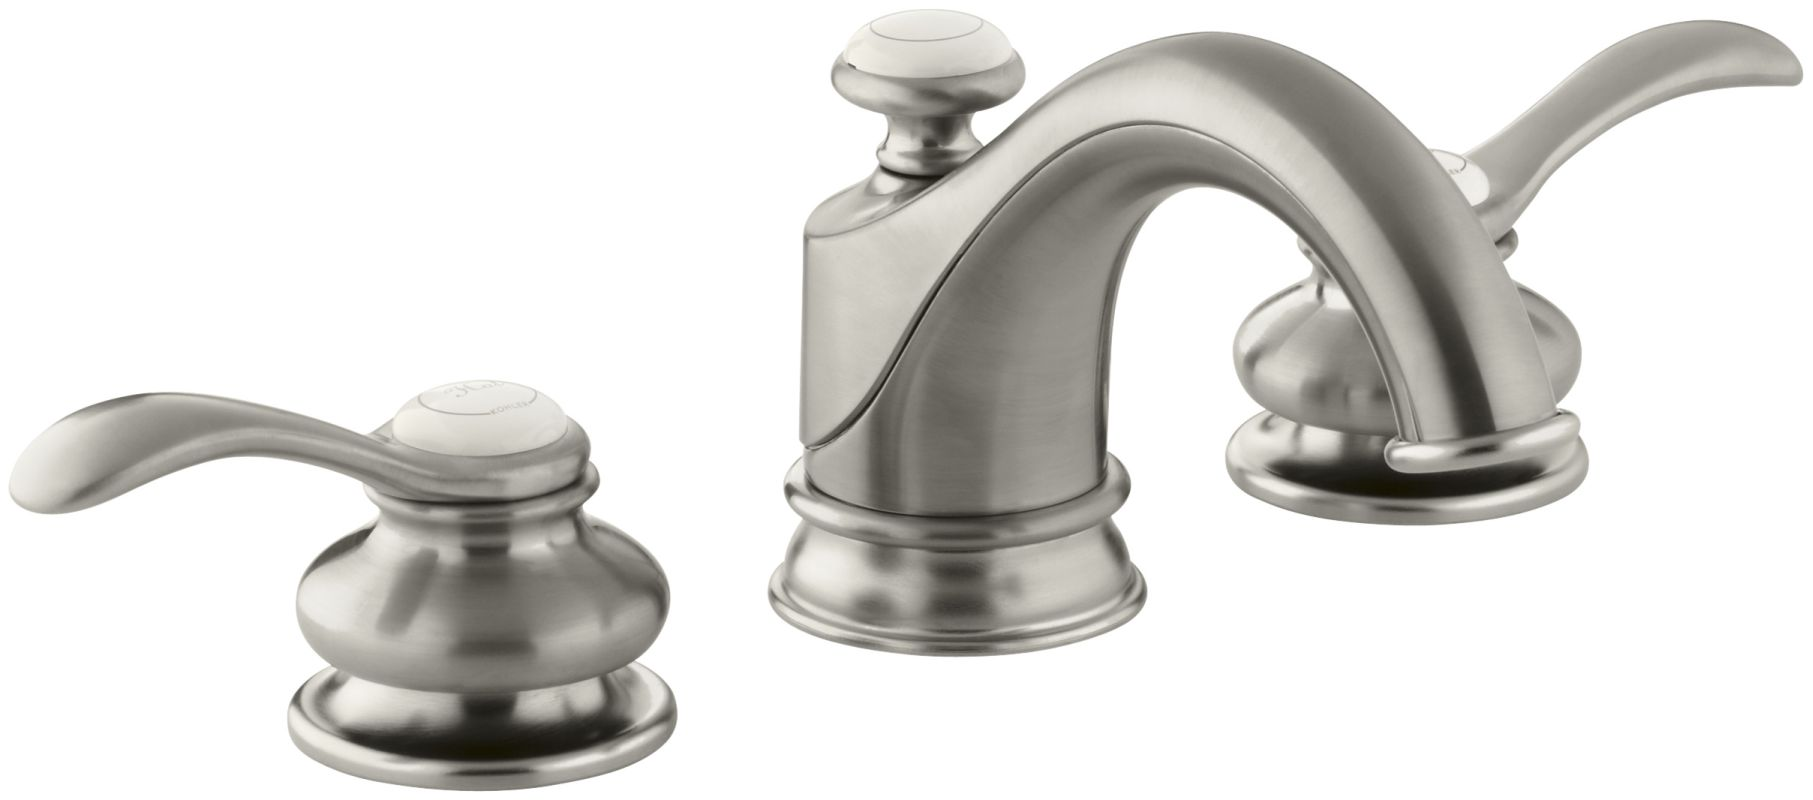 Dorable Kohler Two Tone Faucets Gallery - Water Faucet Ideas ...